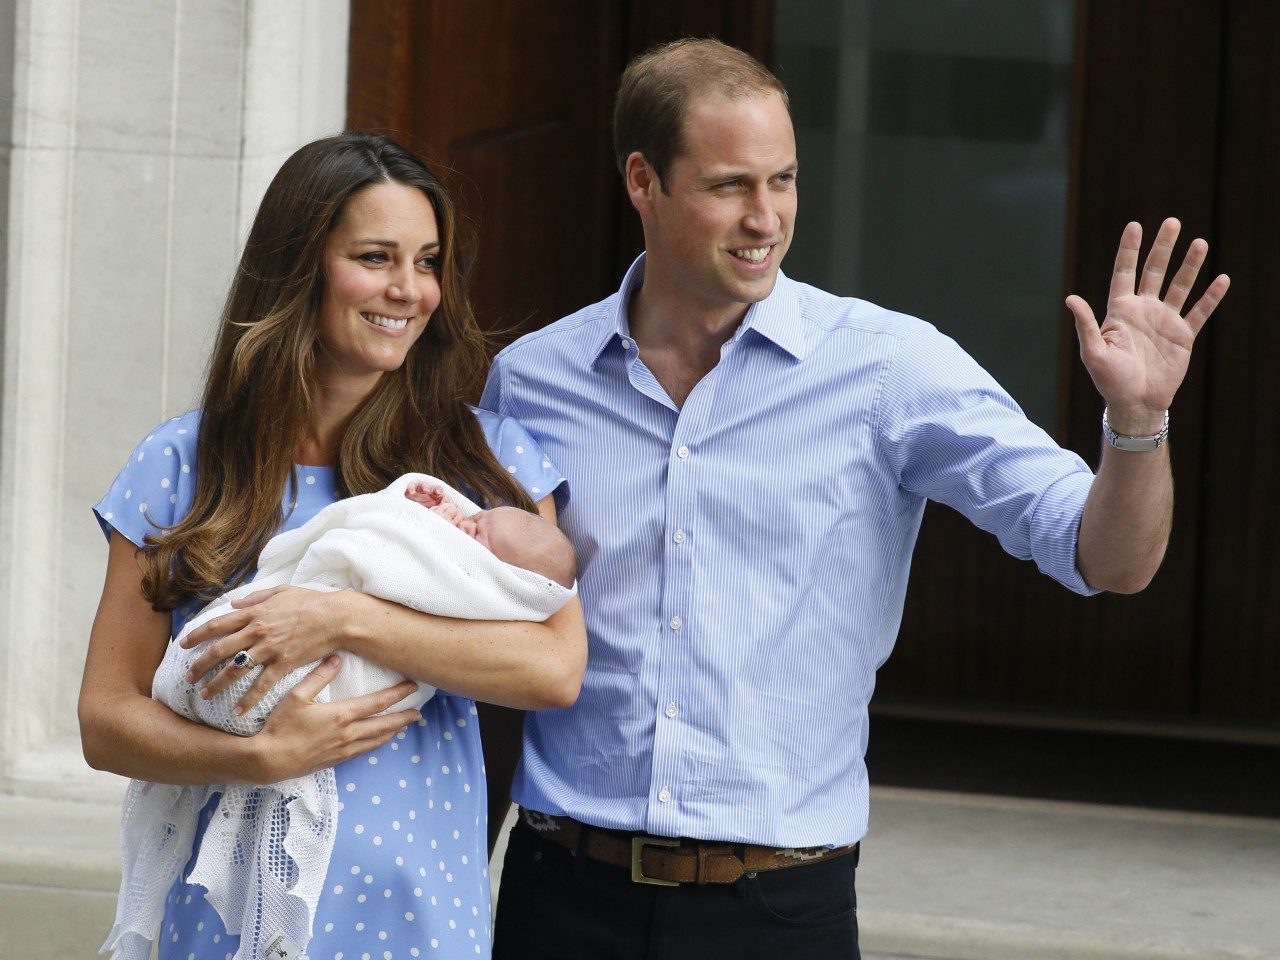 Prince Charming Gifts – Top 10 Gifts for William